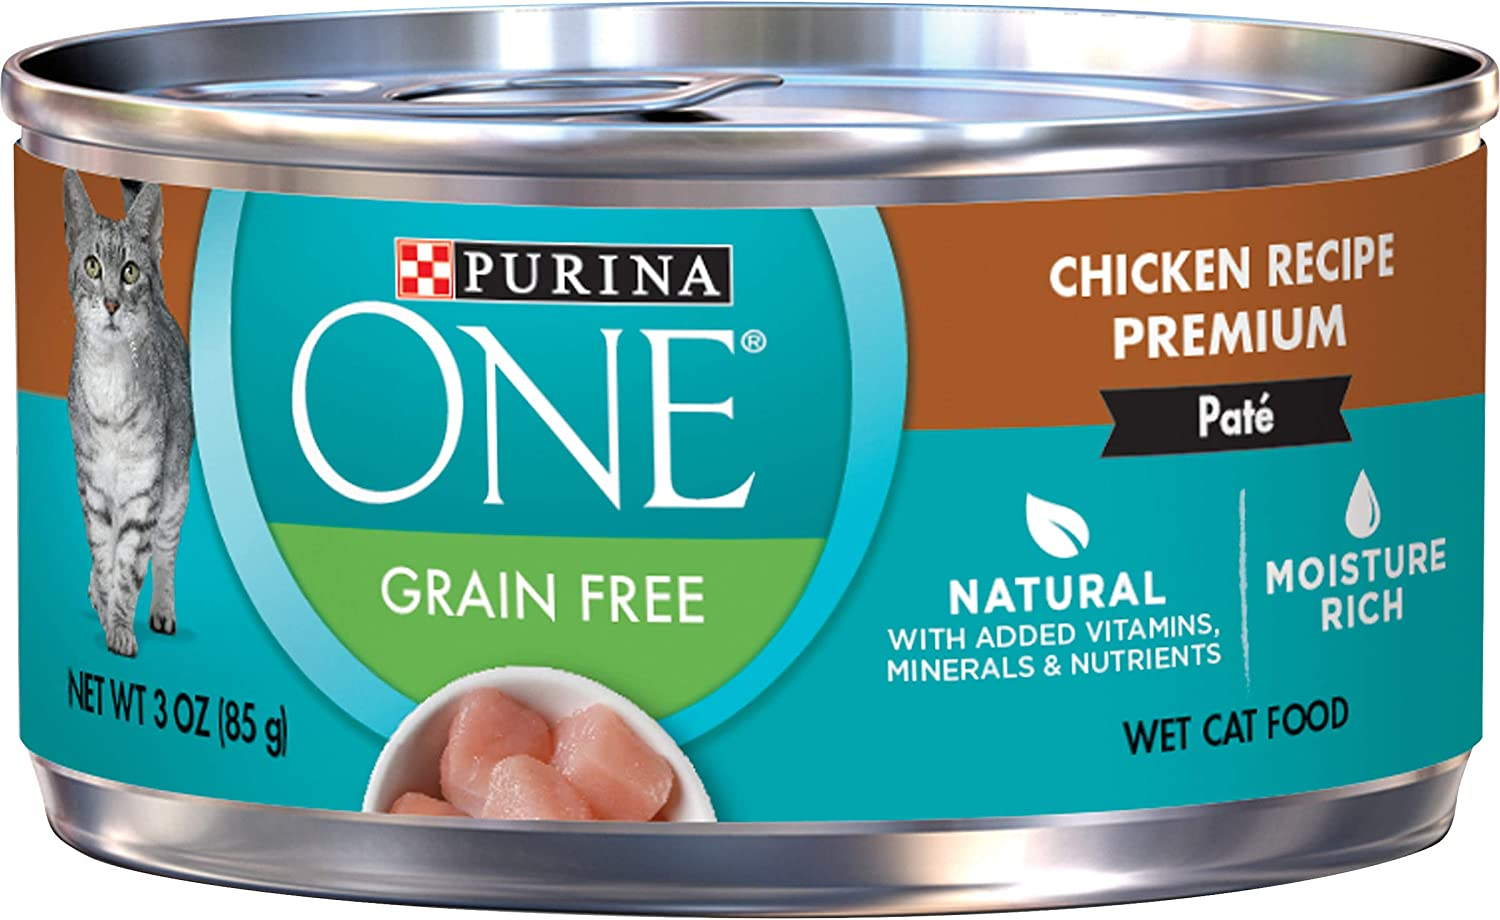 Purina ONE Natural Adult Canned Wet Cat Food - (24) 3 oz. Cans